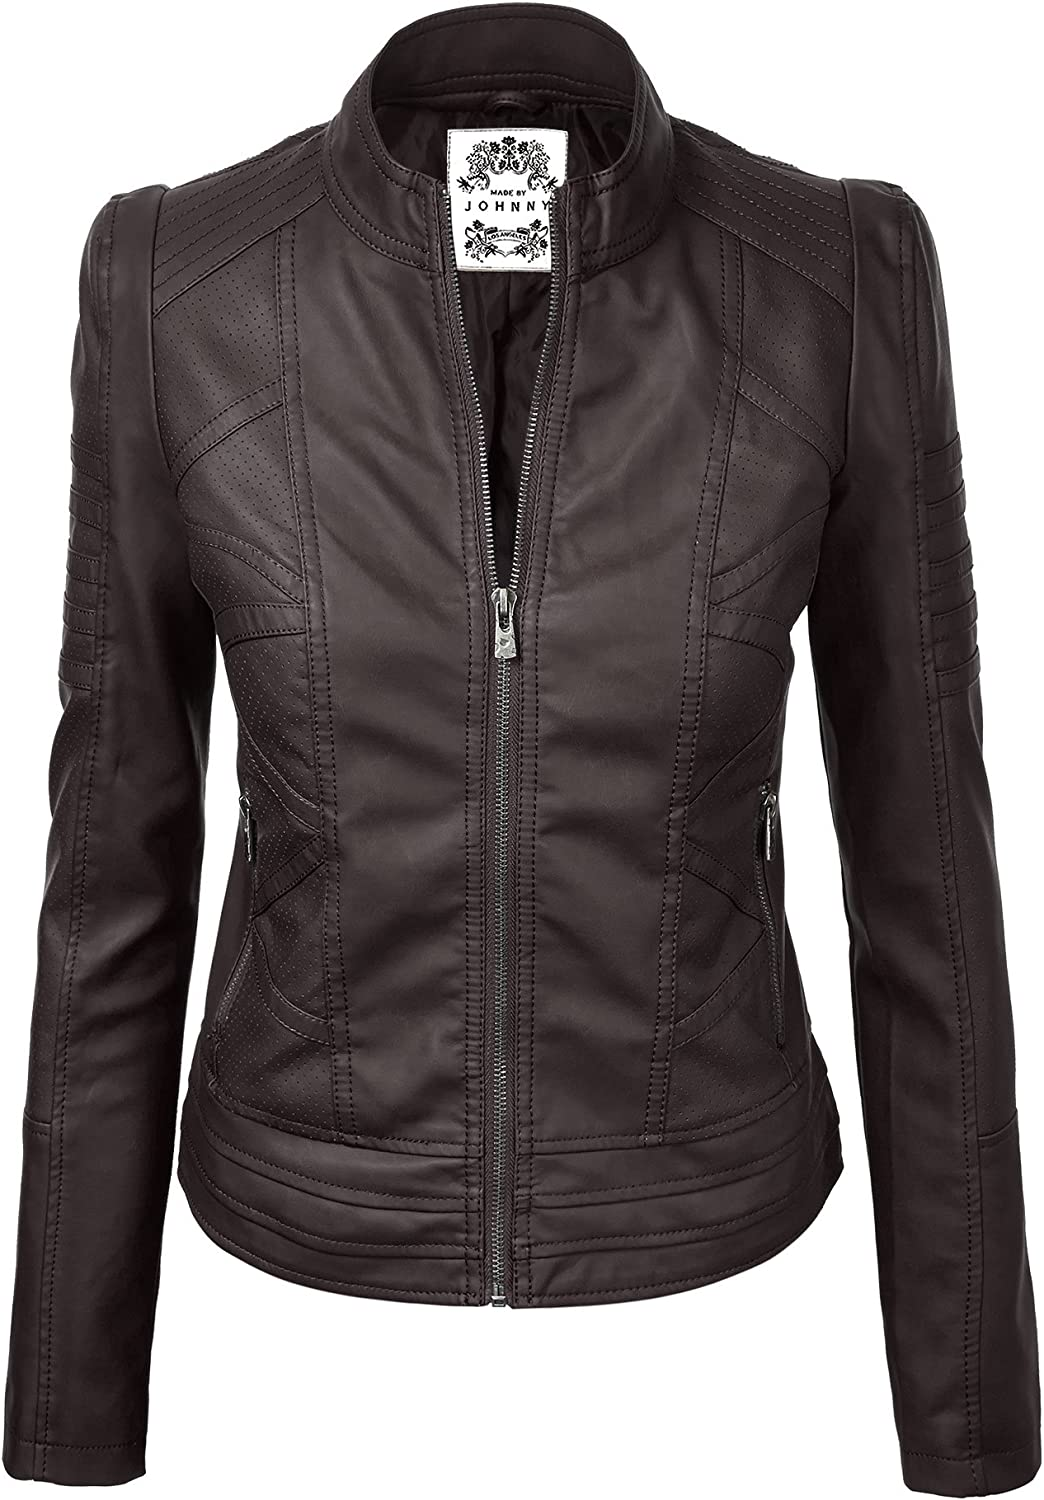 Made by Johnny WJC746 Womens Vegan Leather Motorcycle Jacket S Coffee